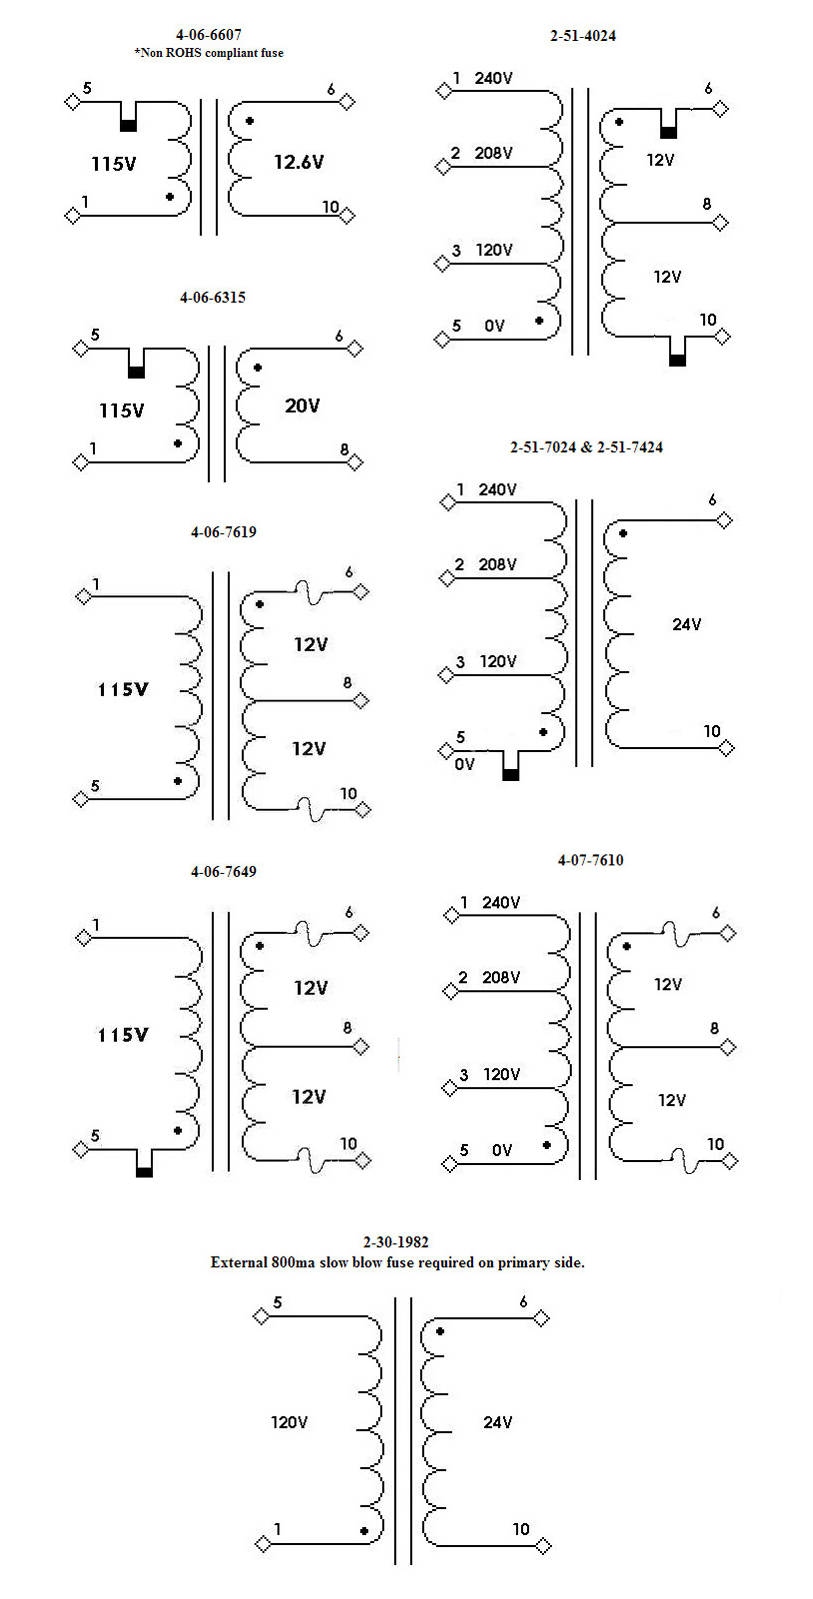 4-06-4-07-2-51-Series-Polarity-Schematic  L Wiring Diagram on